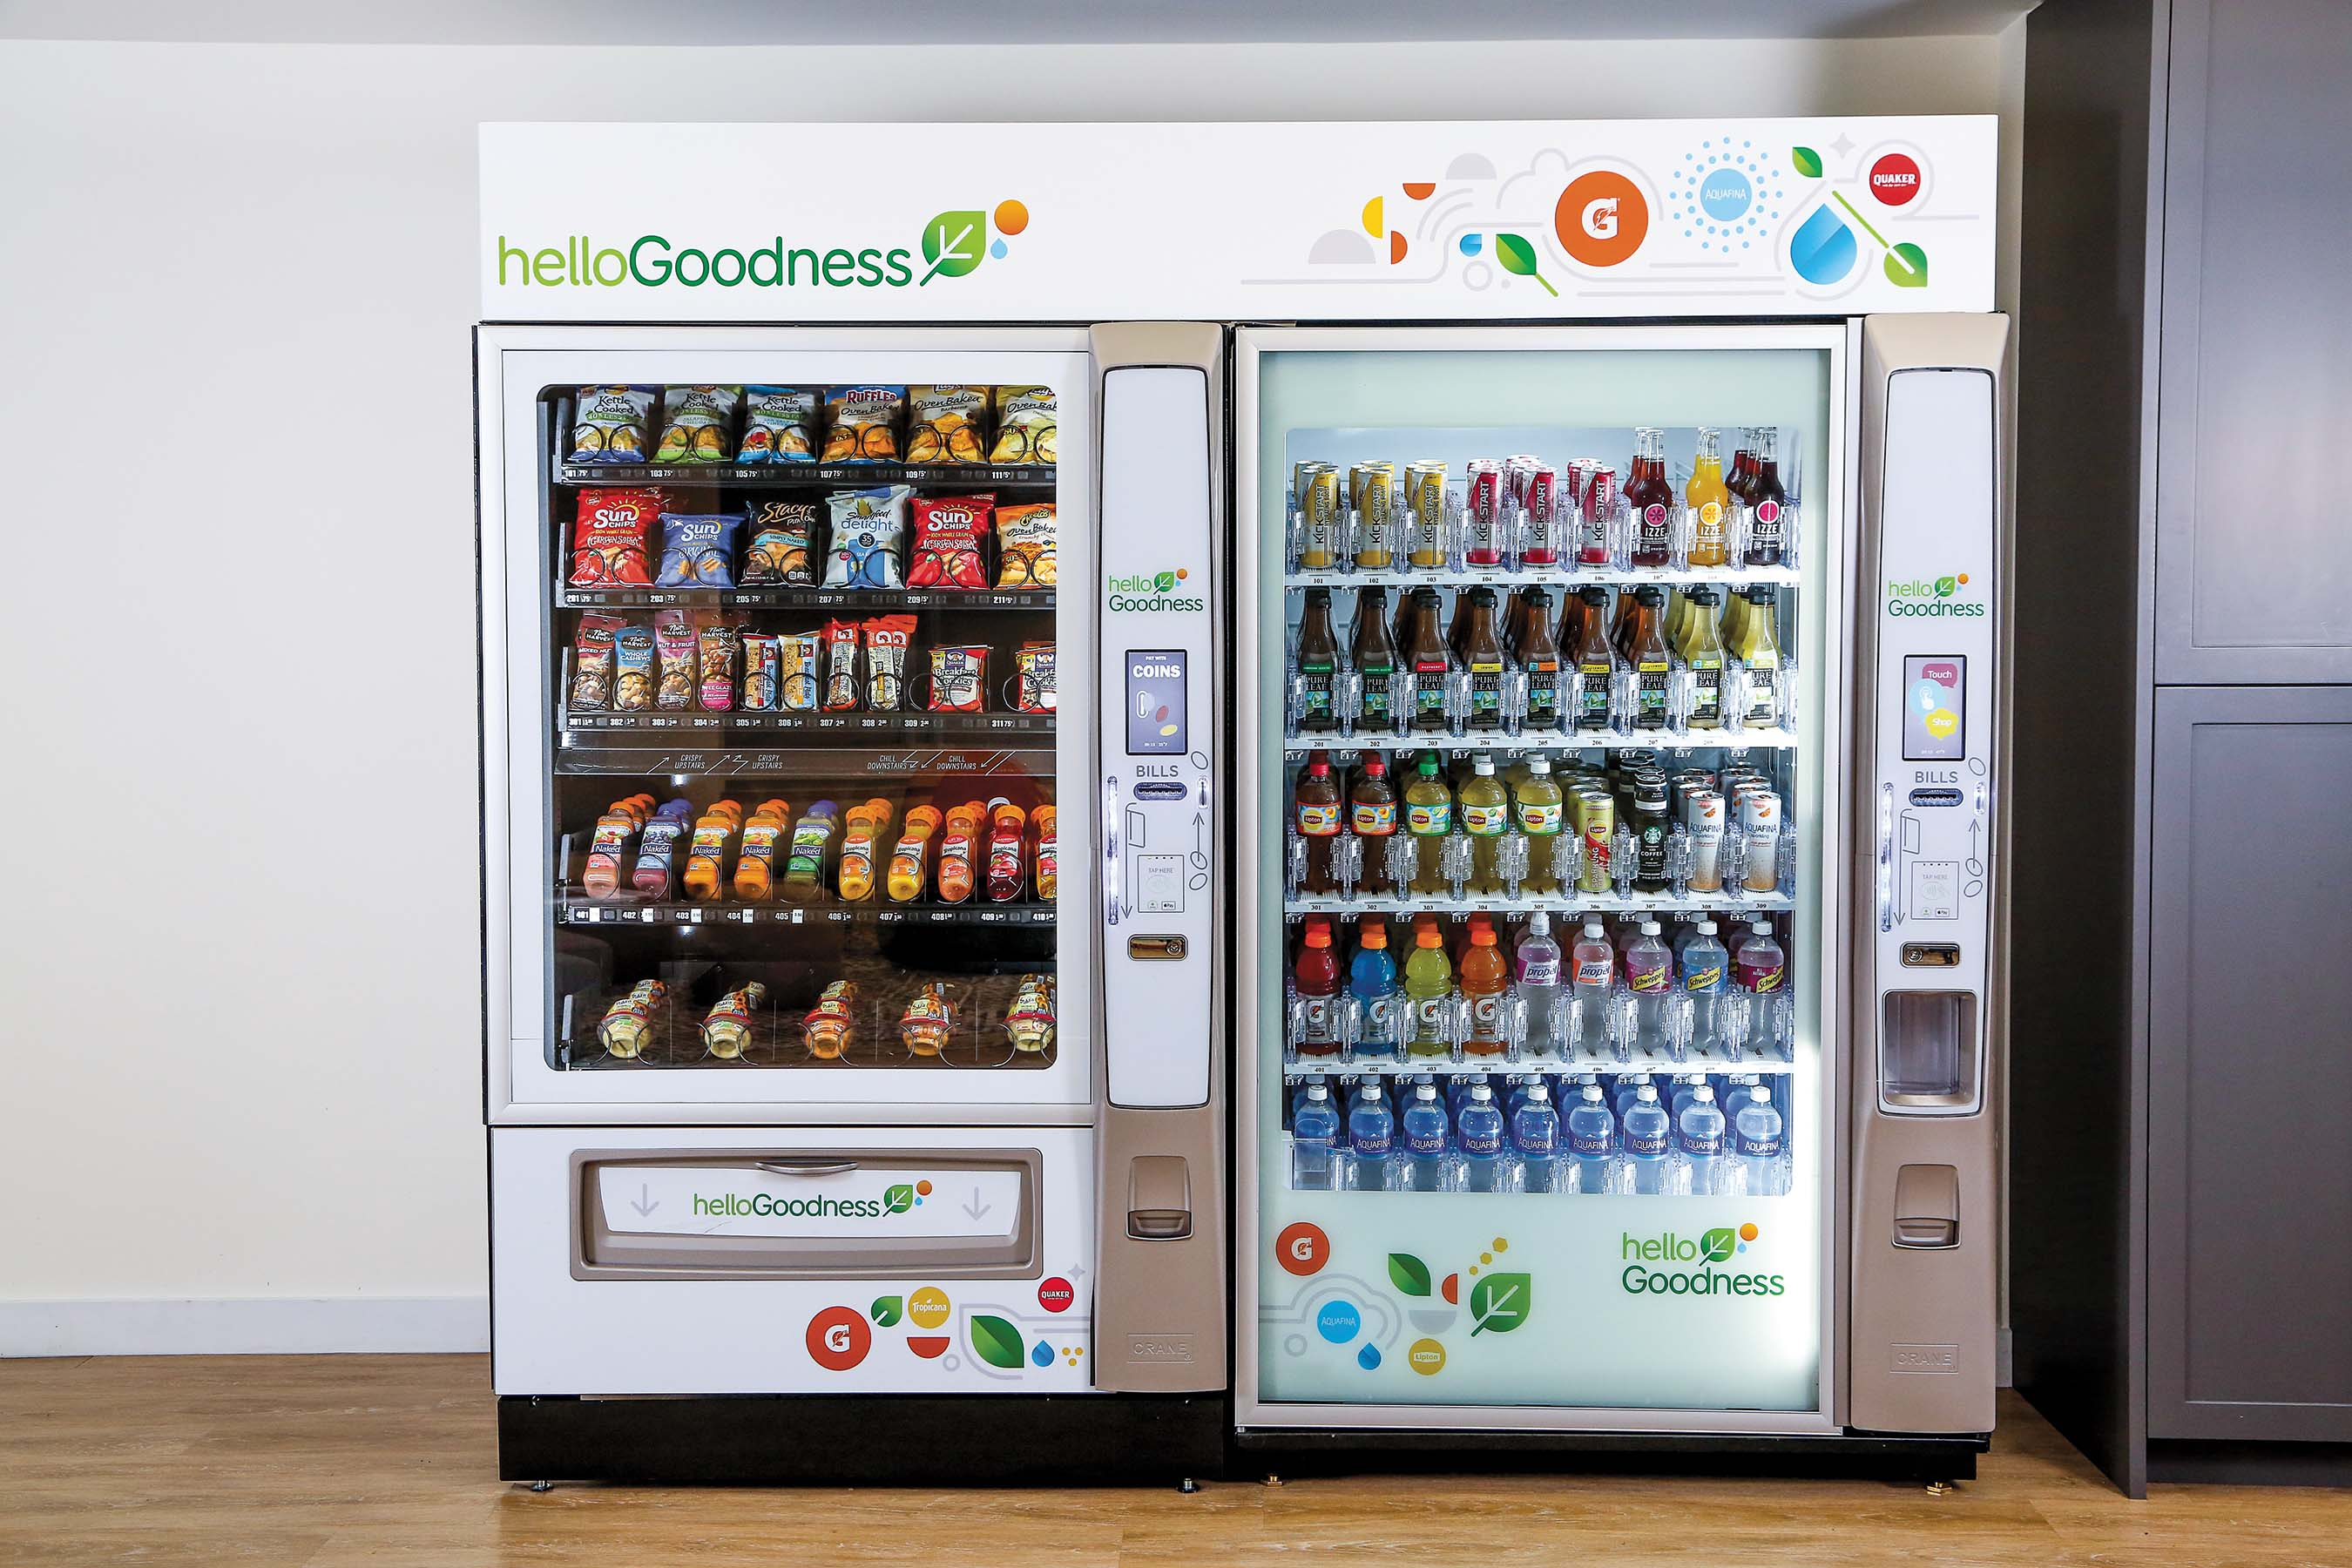 PepsiCo Hello Goodness Vending Machine